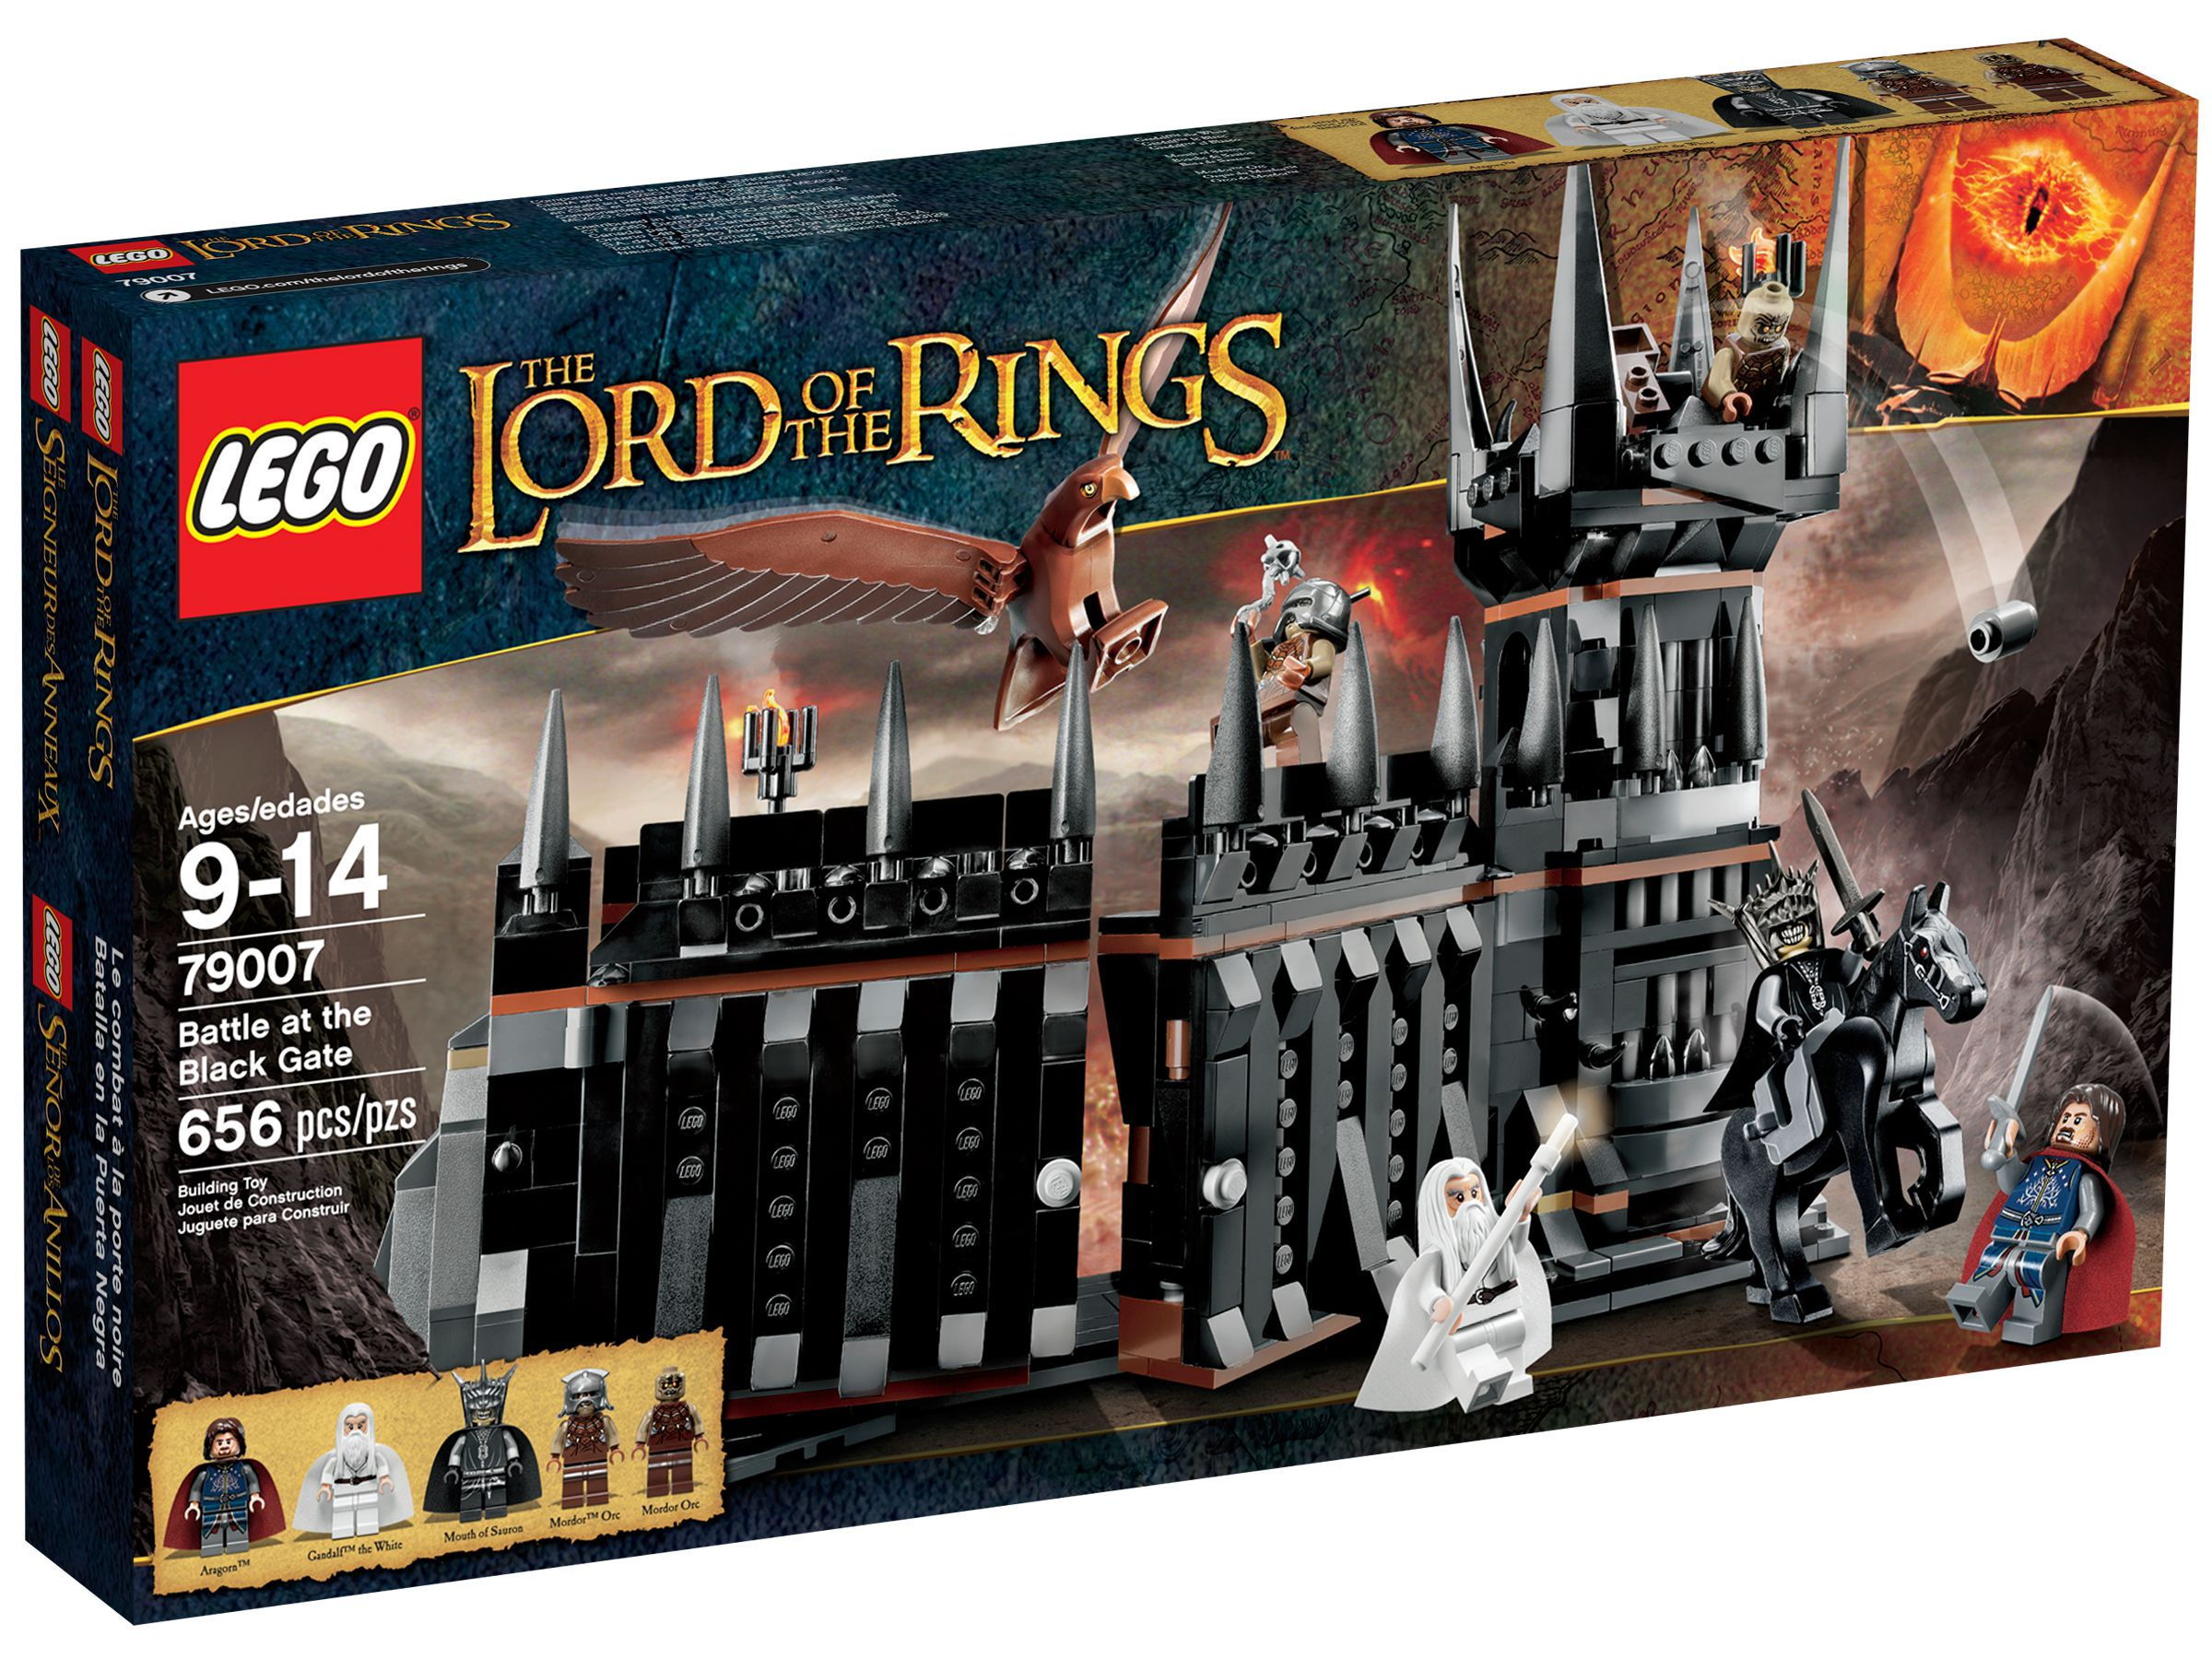 LEGO Lord of the Rings 79007 Die Schlacht am Schwarzen Tor LEGO_79007_alt1.jpg